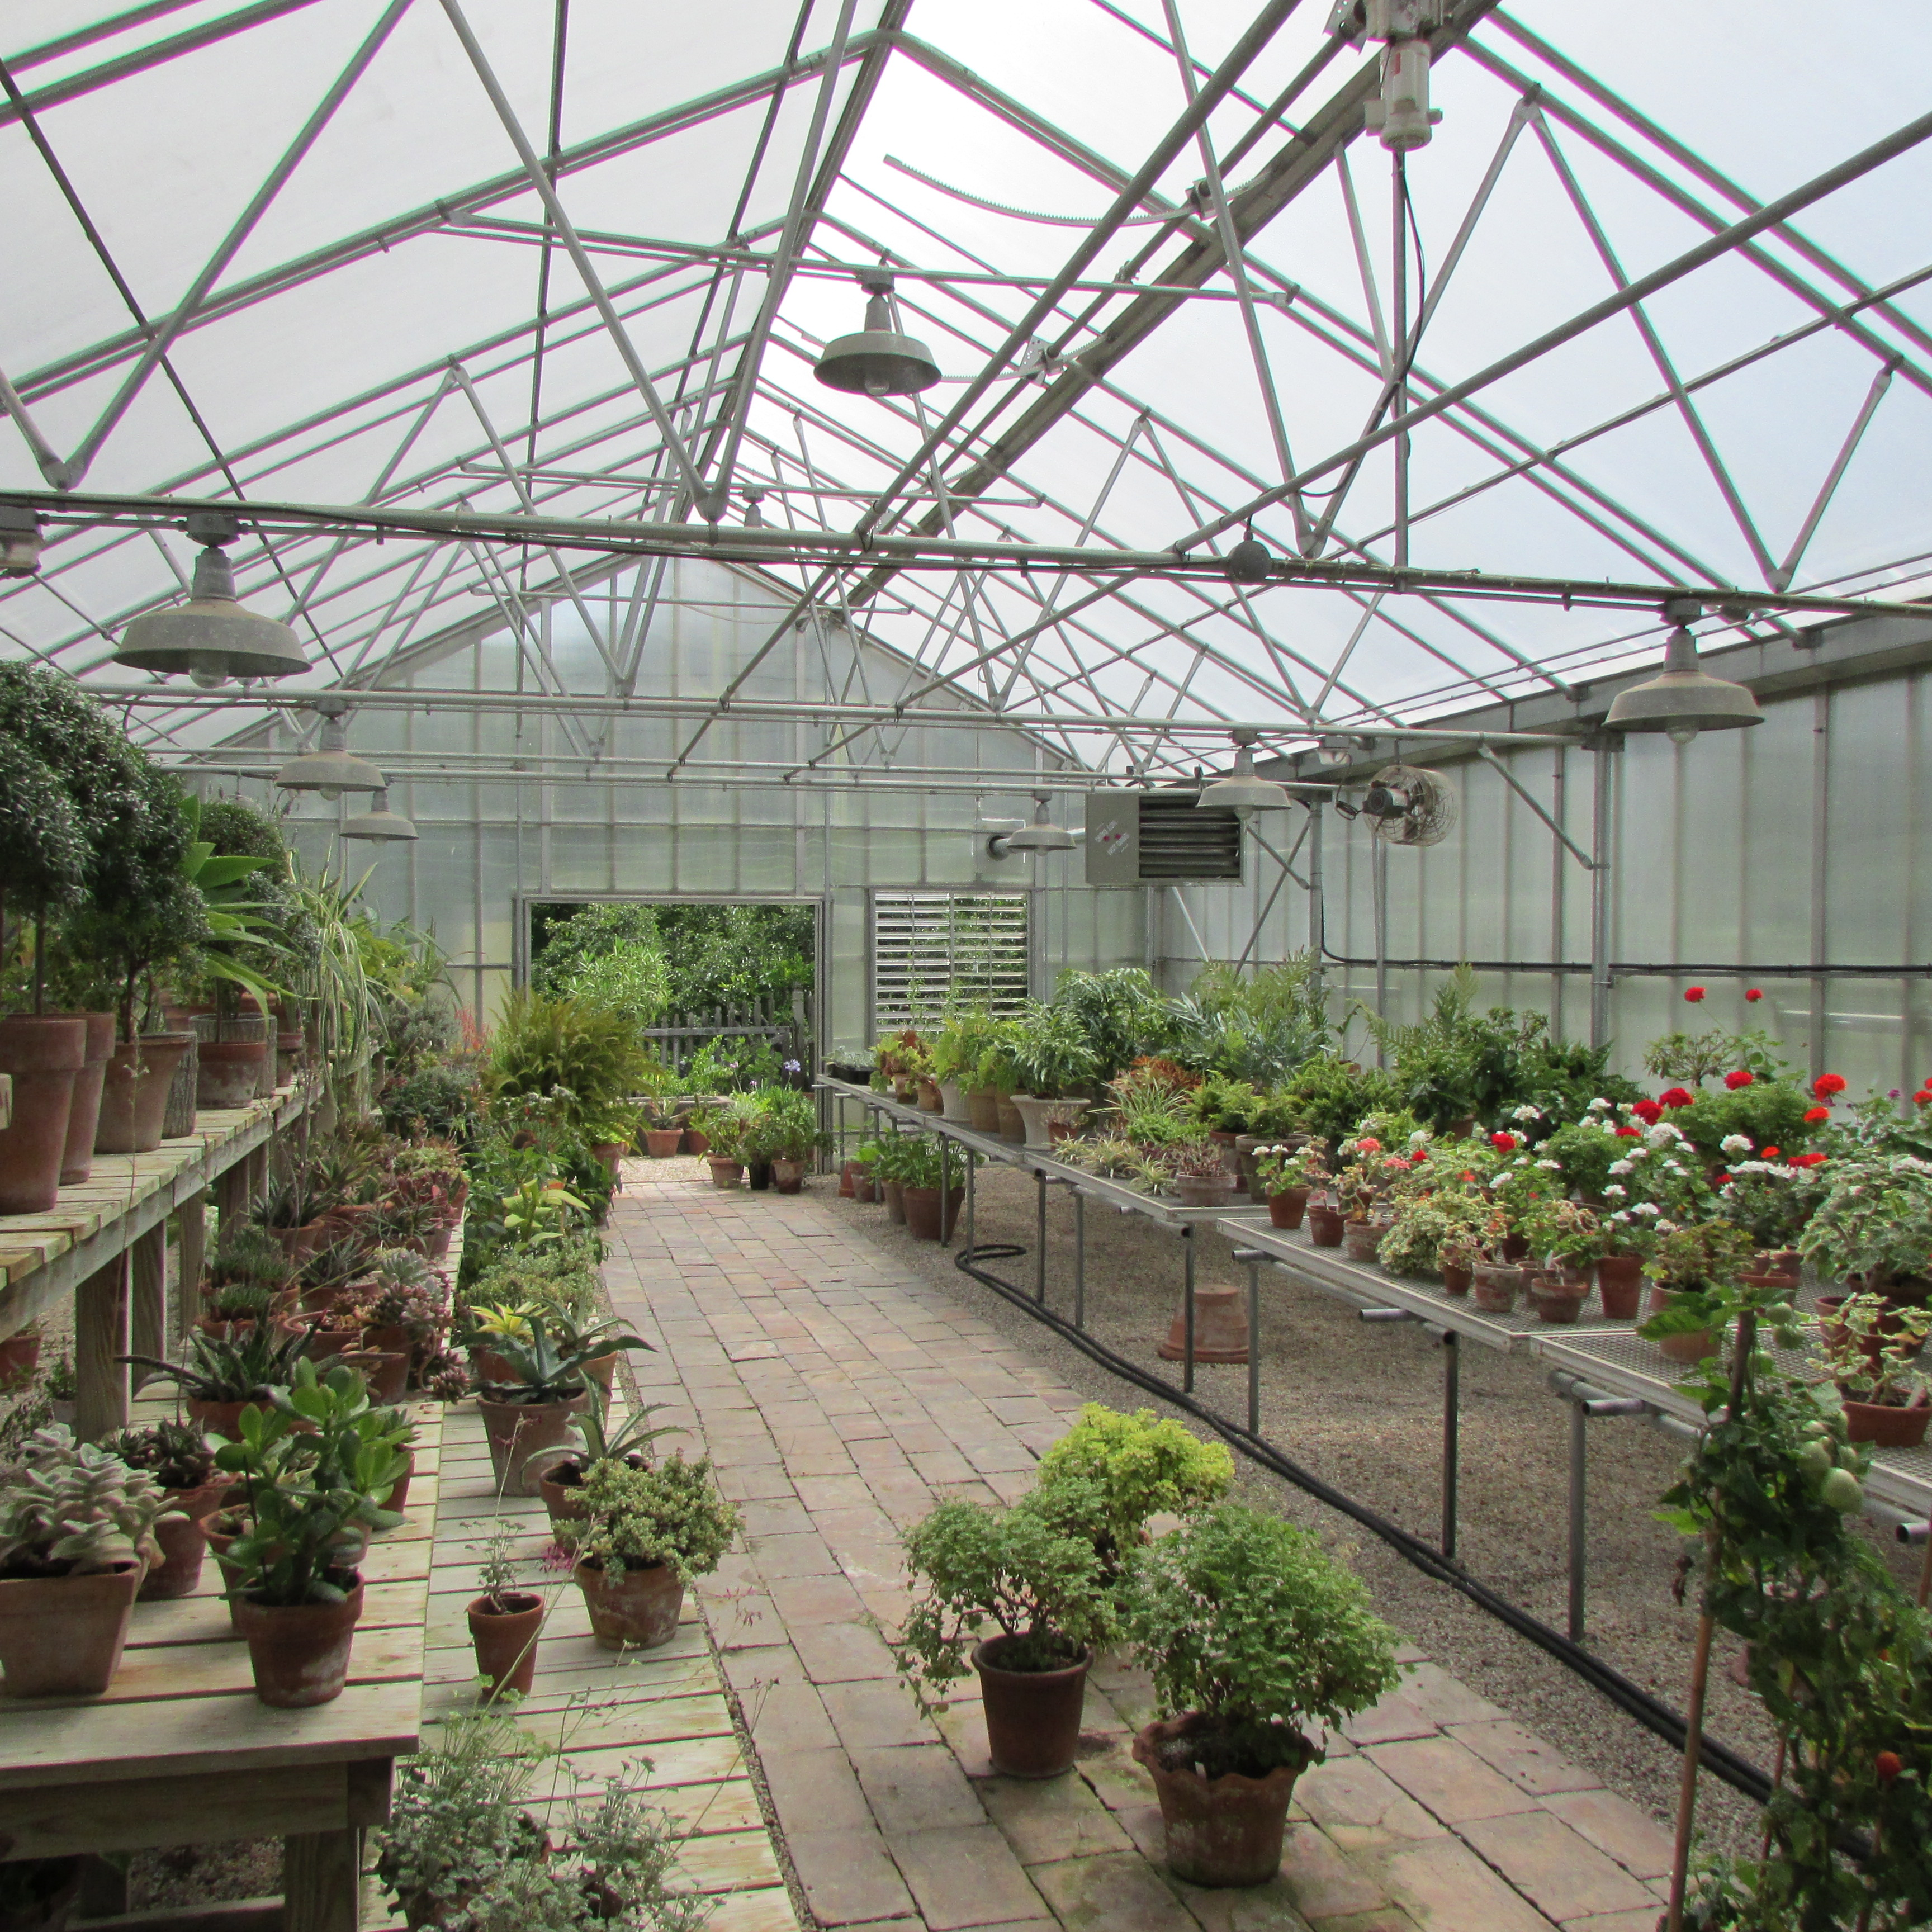 Visiting Bunny Williams And John Rosselli's Garden In